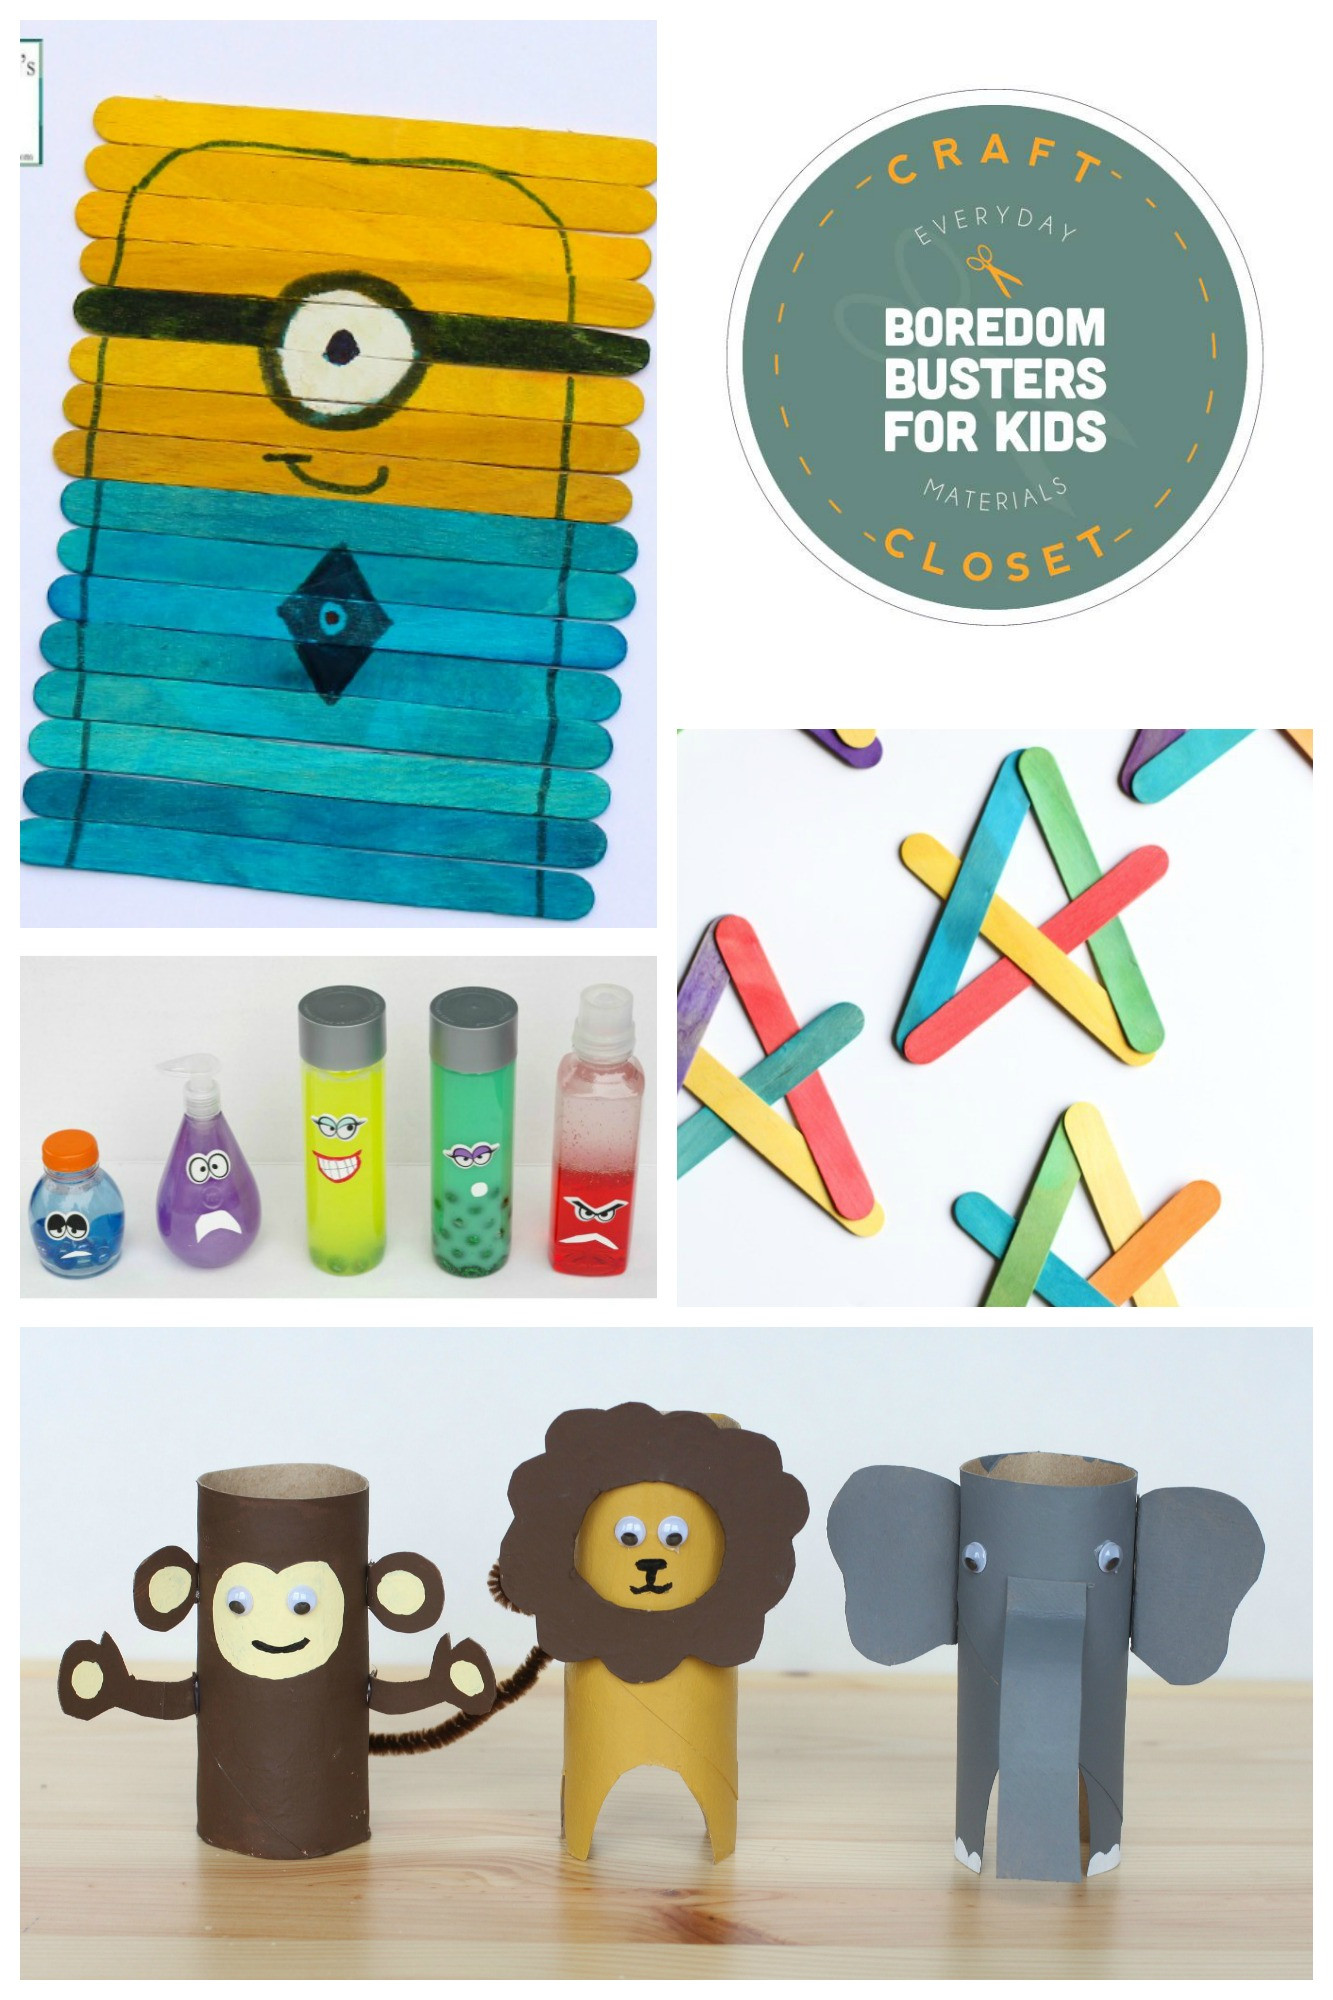 Fun Projects For Toddlers  25 Crafts and Activities for Kids Using Everyday